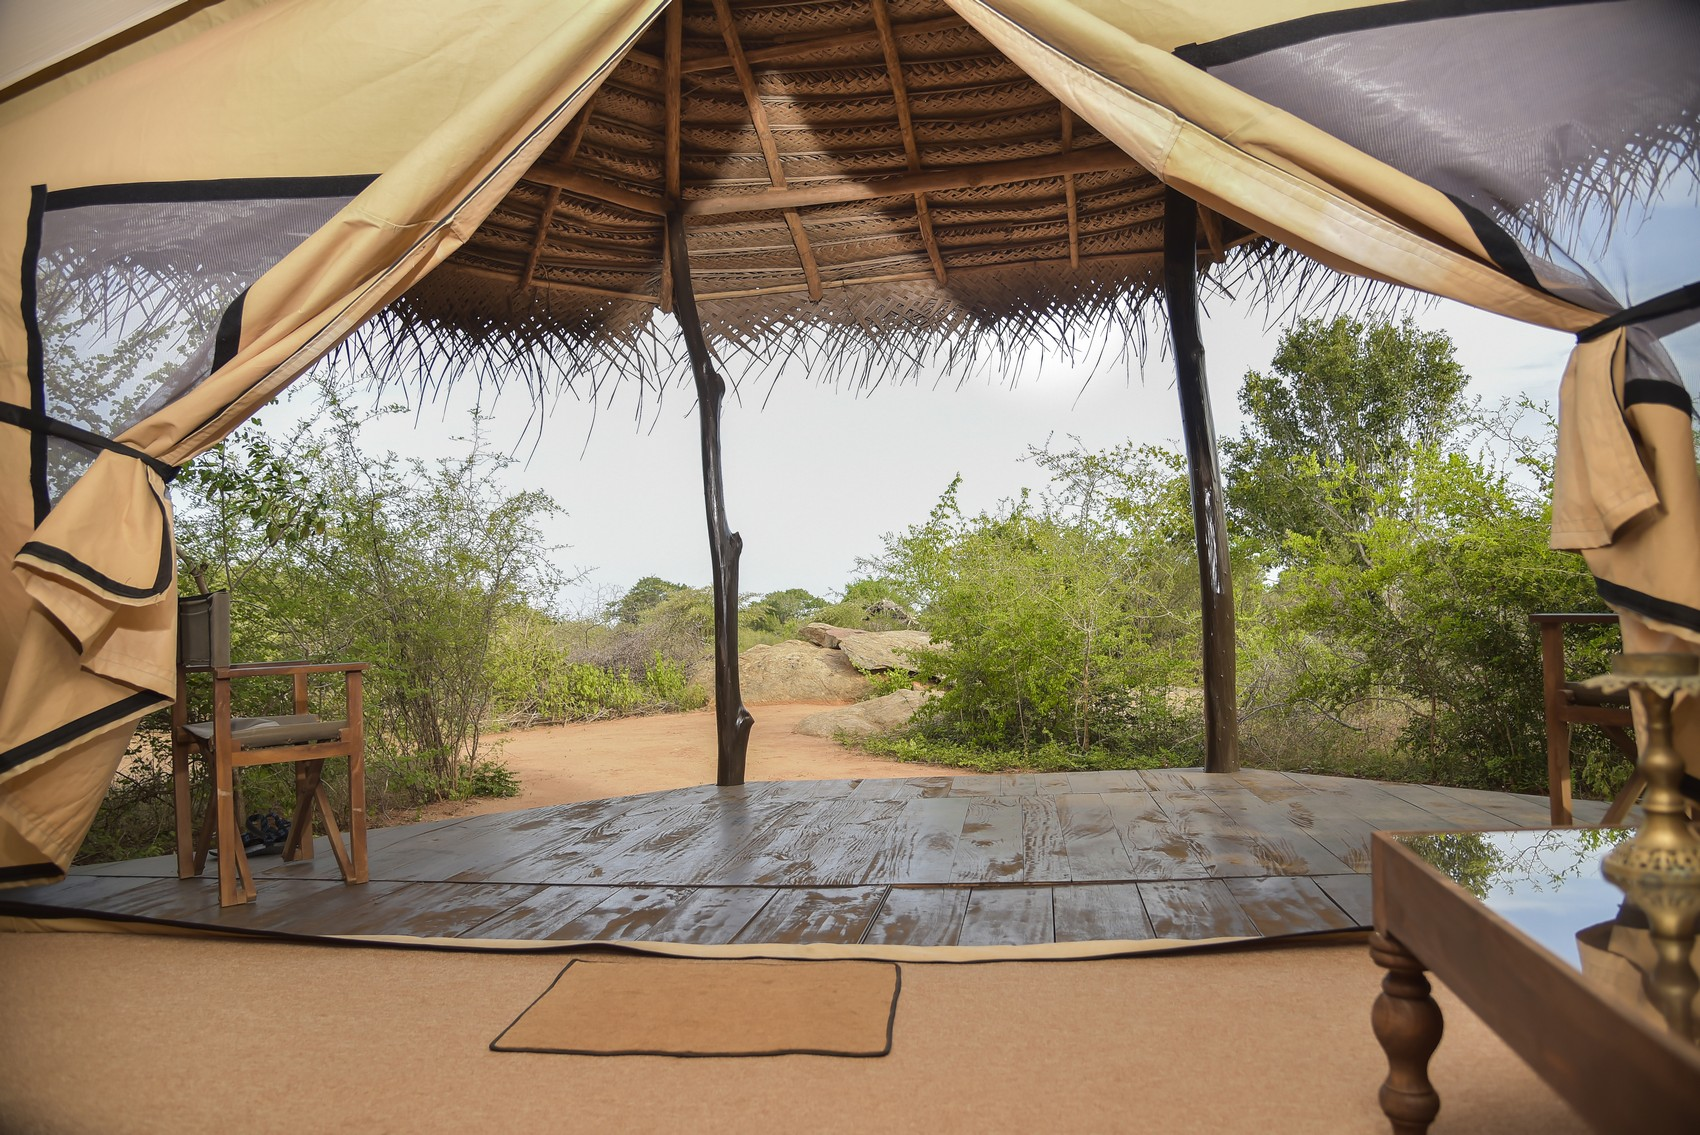 Safari Camping Hits Sri Lanka